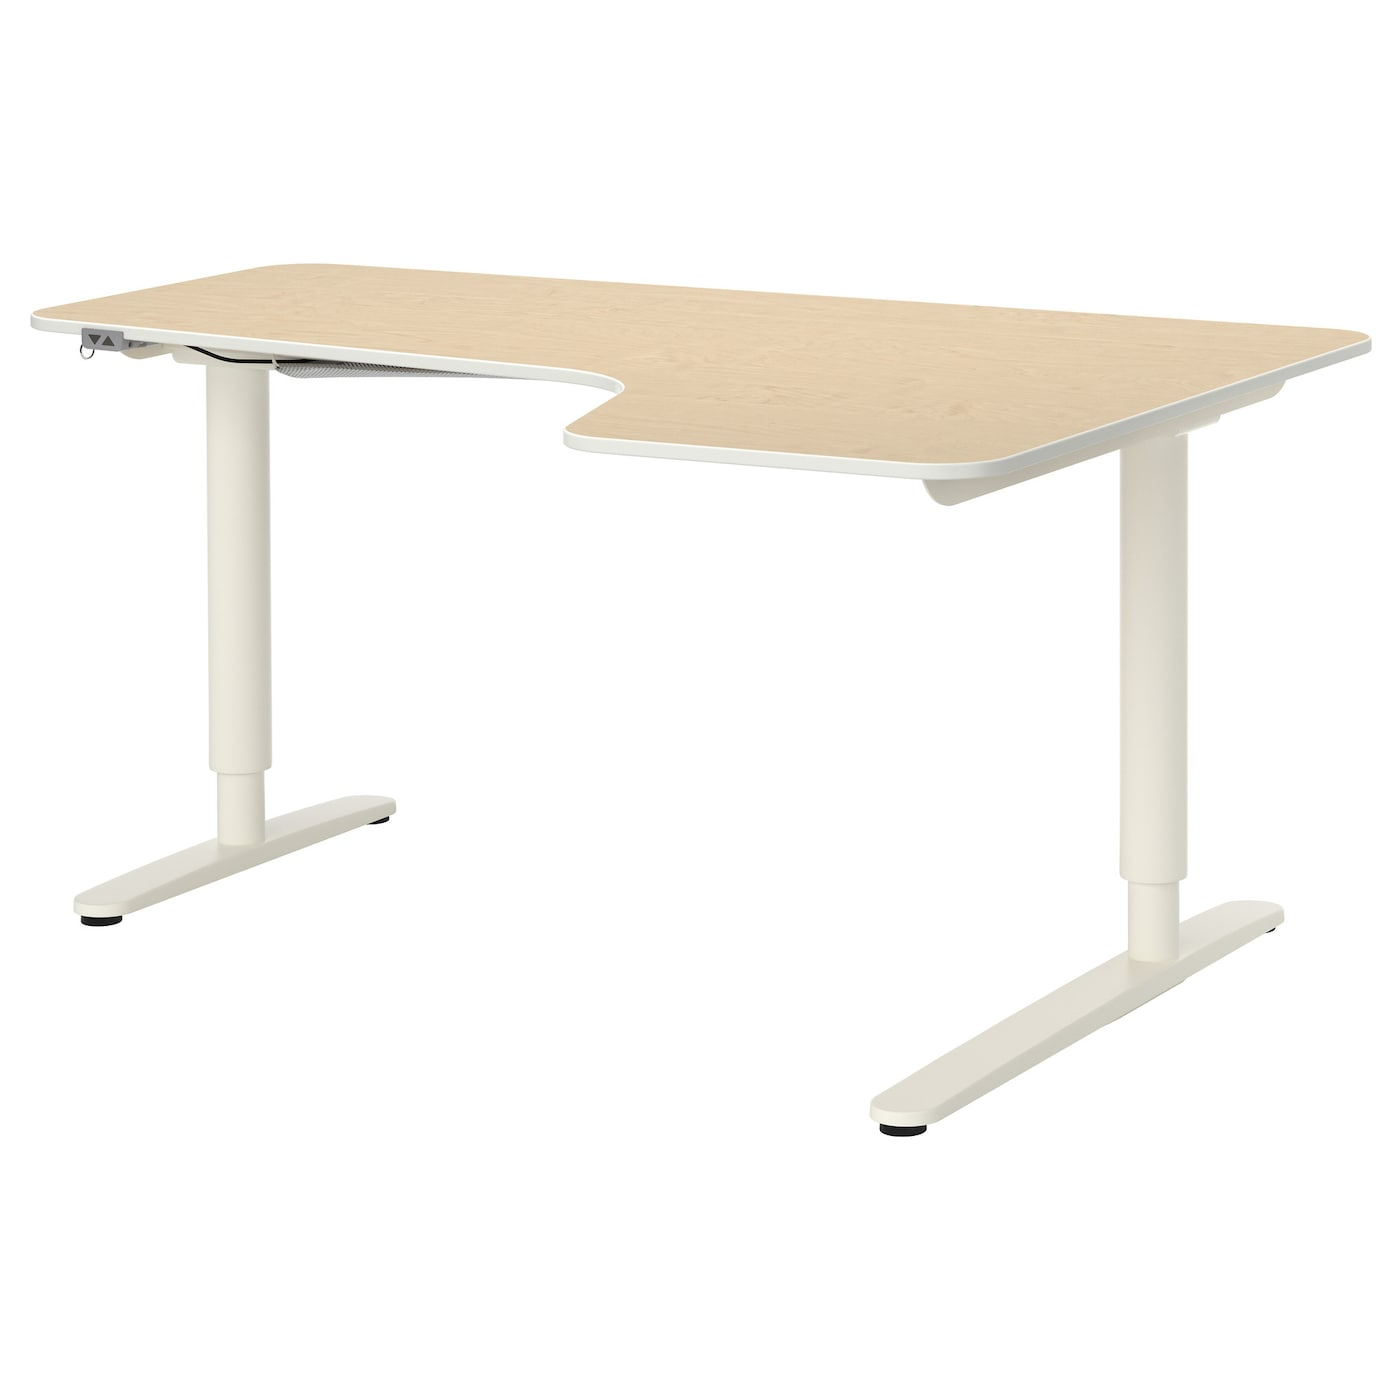 IKEA BEKANT corner desk right sit/stand